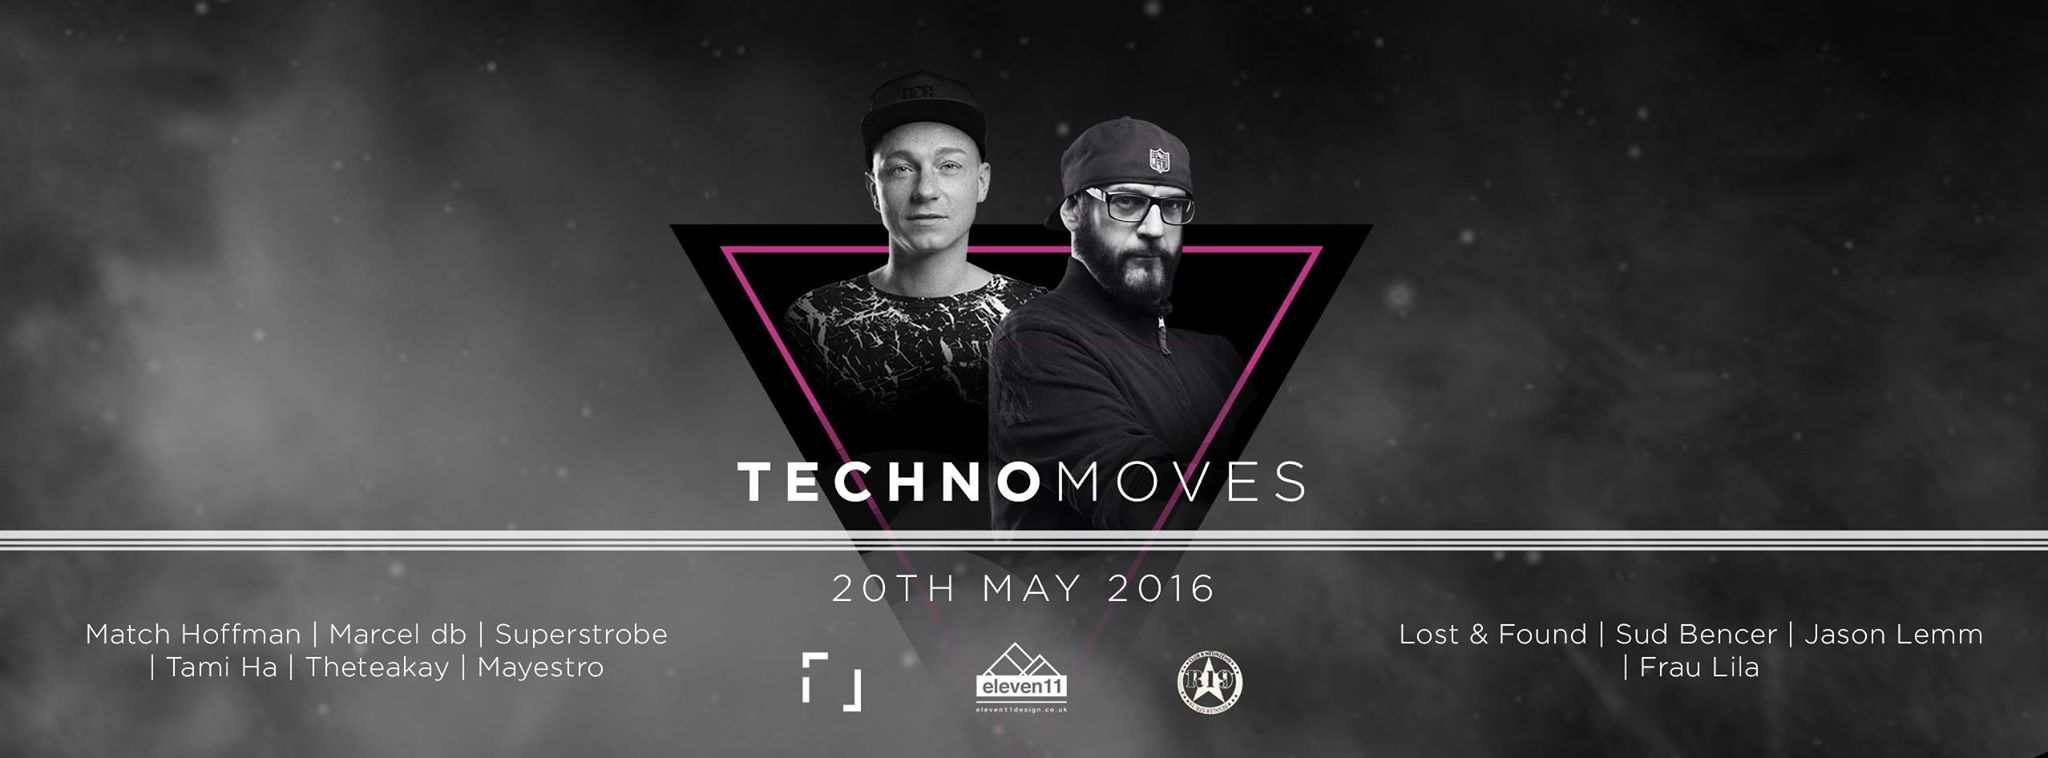 TECHNOMOVES mit Marcel db, Tami Ha & Jason Lemm im R19 Club Berlin